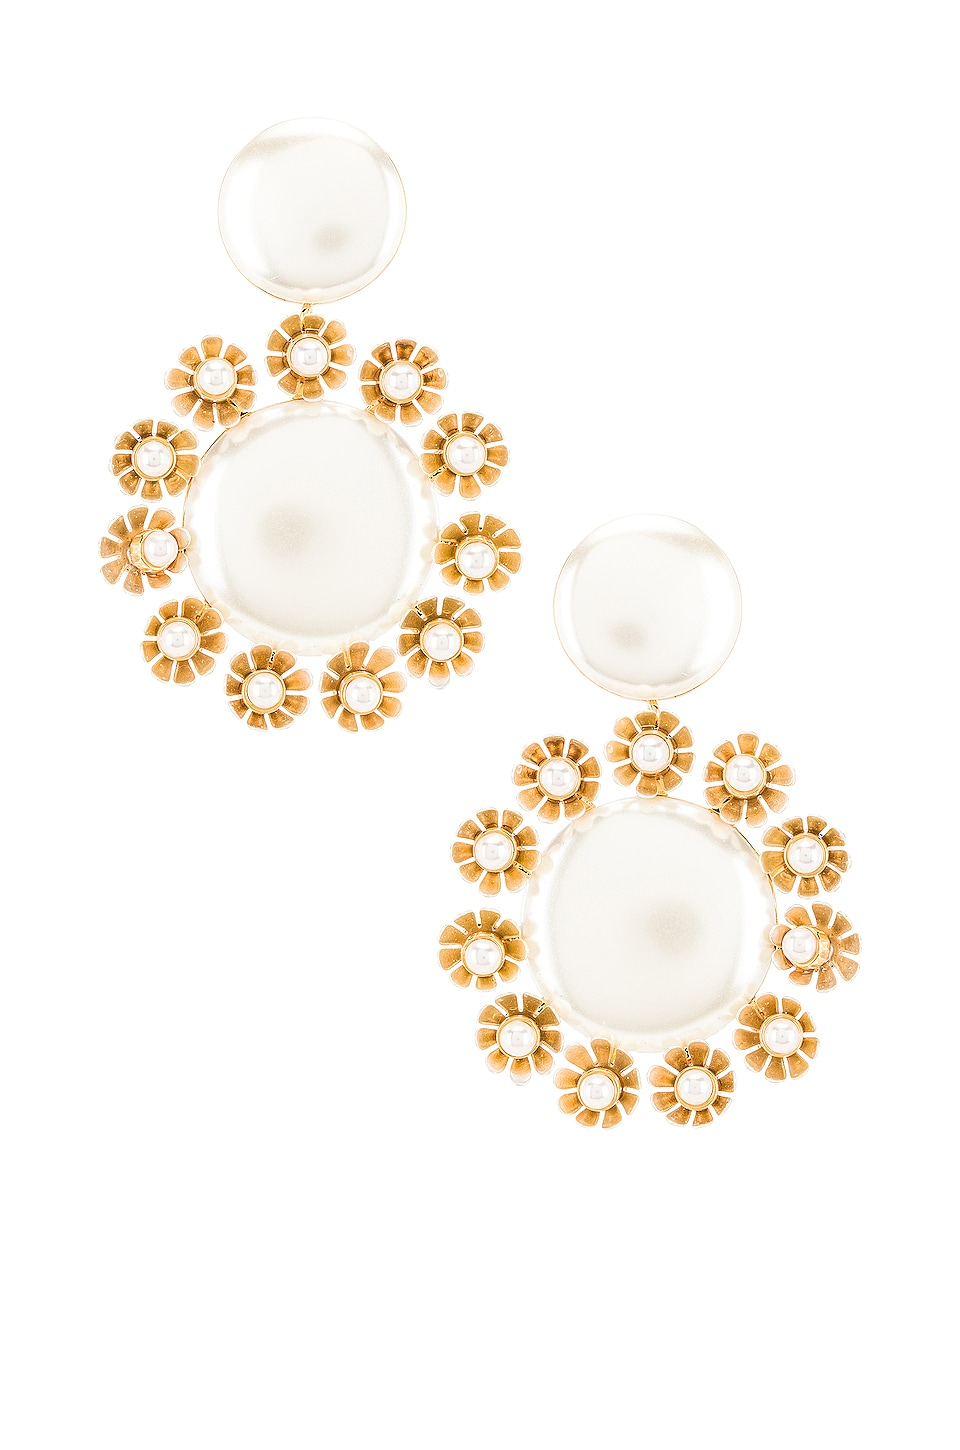 Lele Sadoughi Round Plumeria Trim Earrings in Pearl